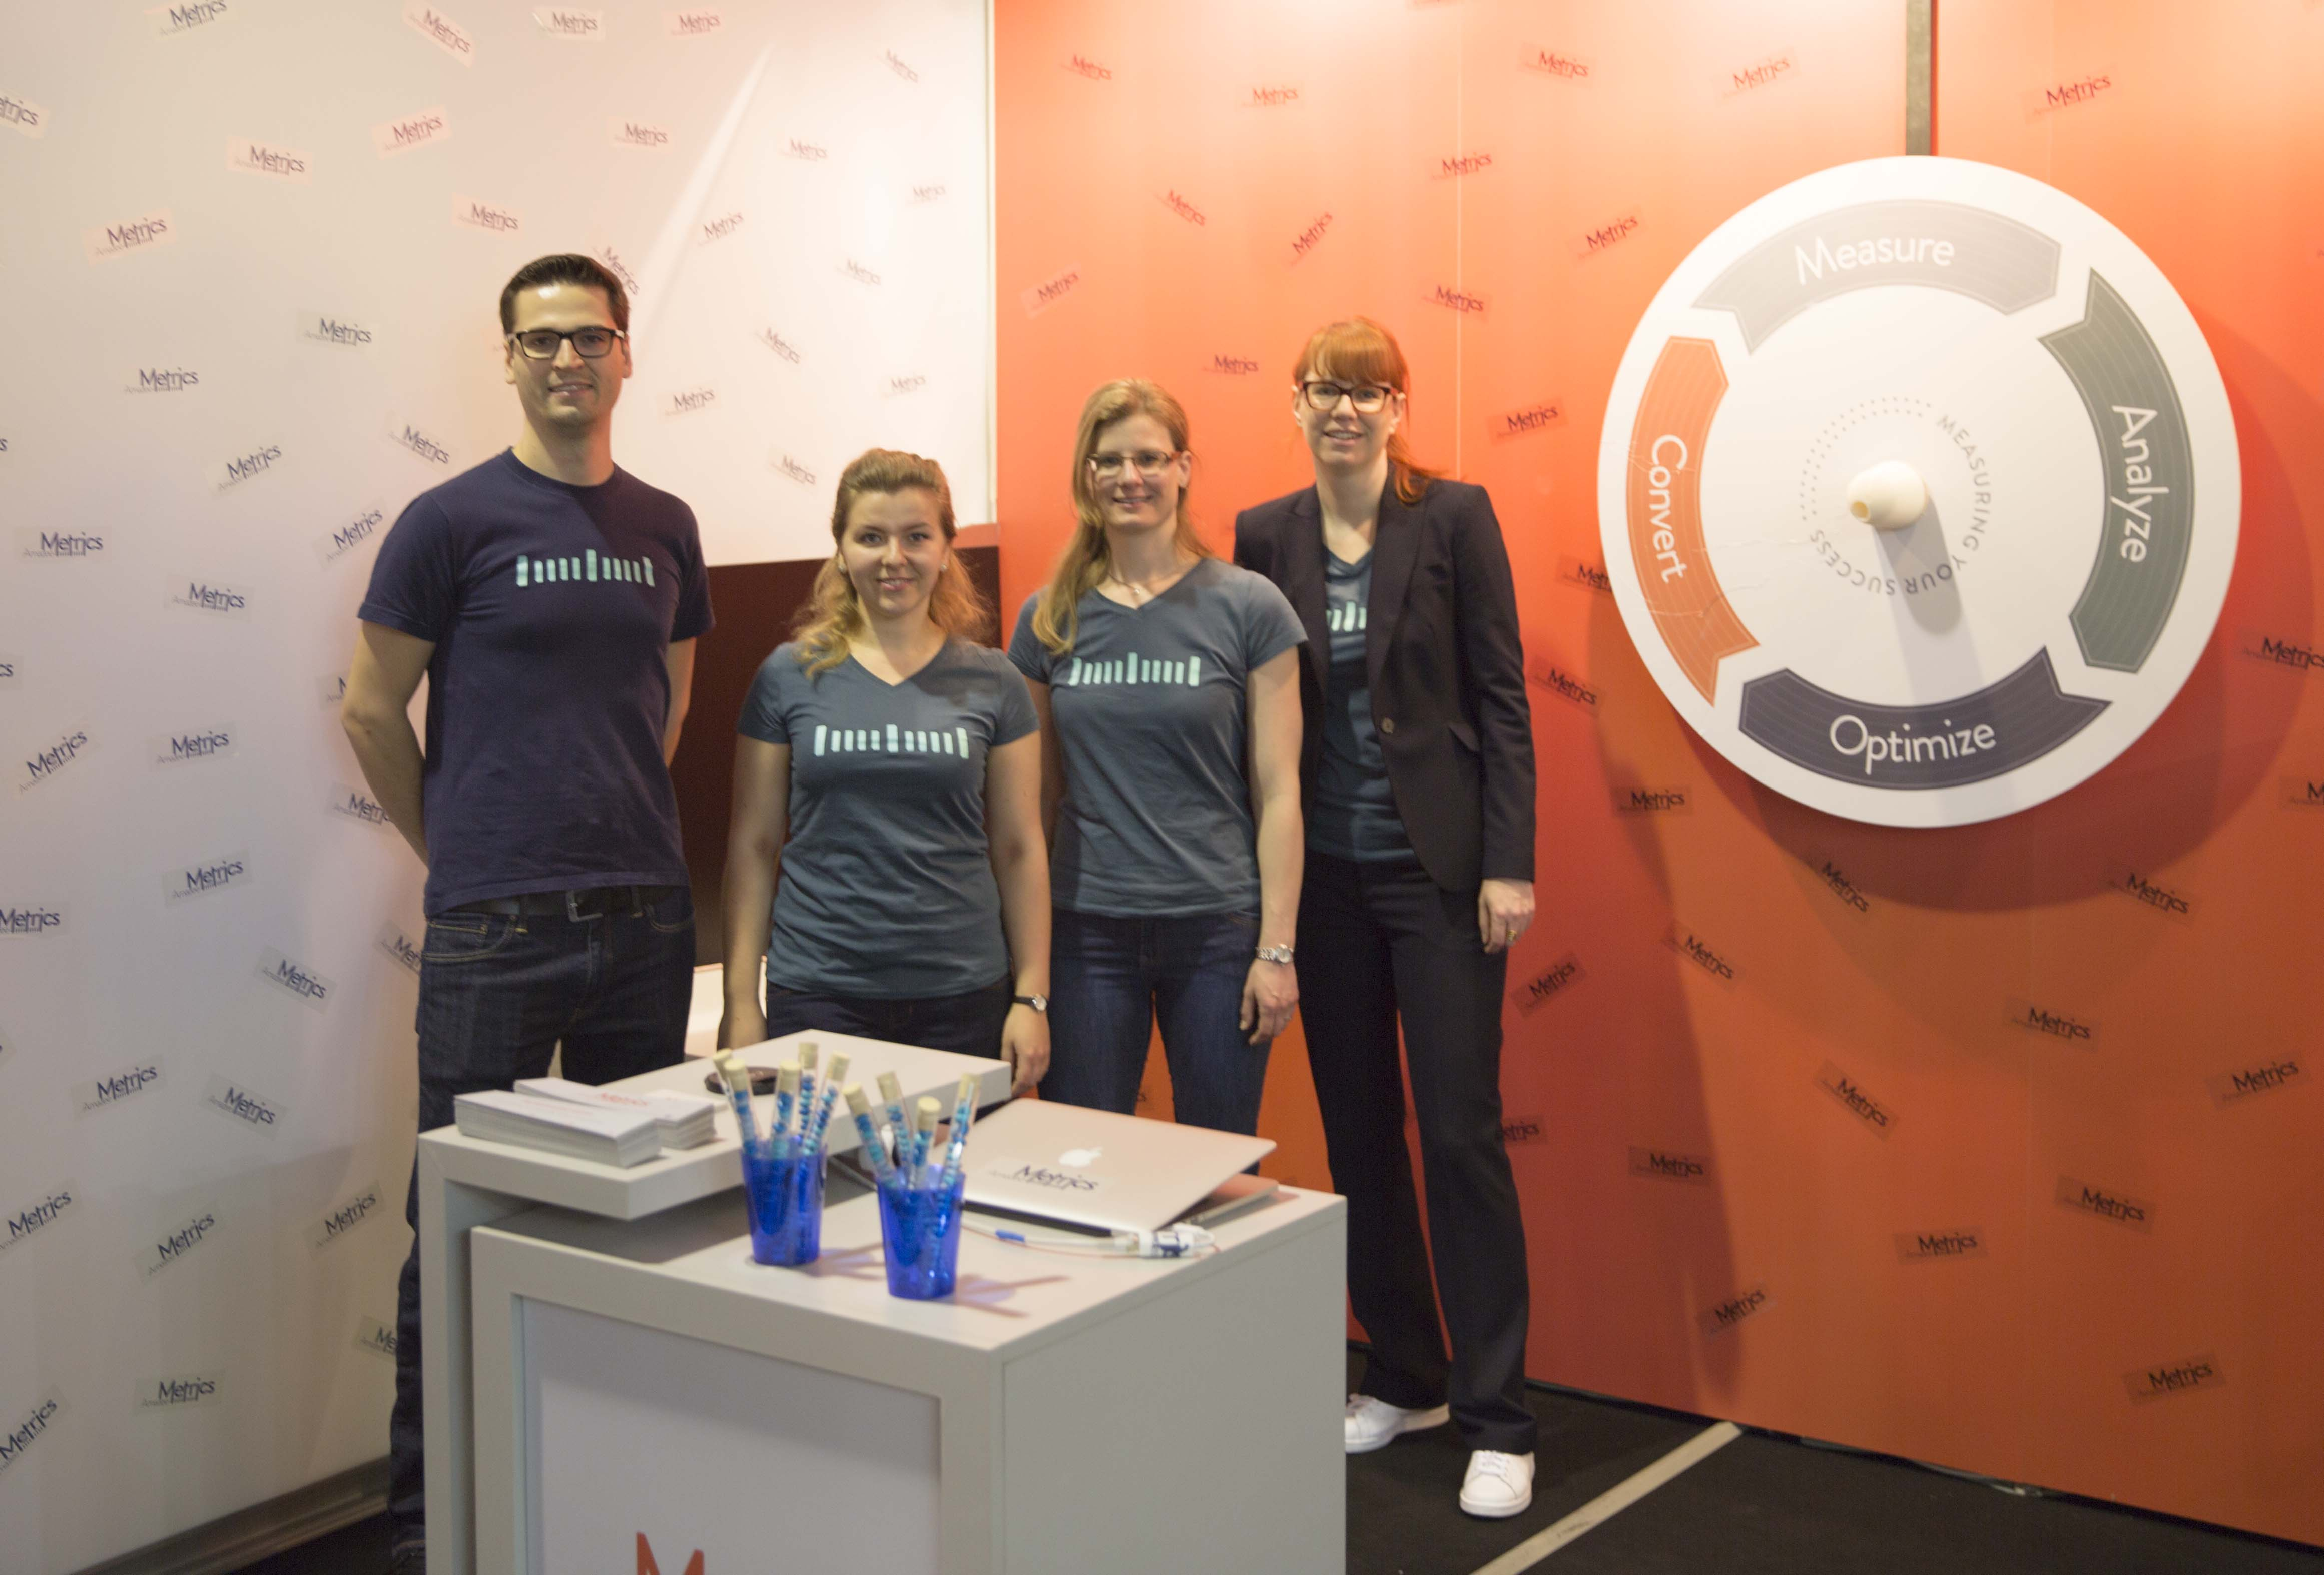 The Amazee Metrics team at our booth at SOM 2015